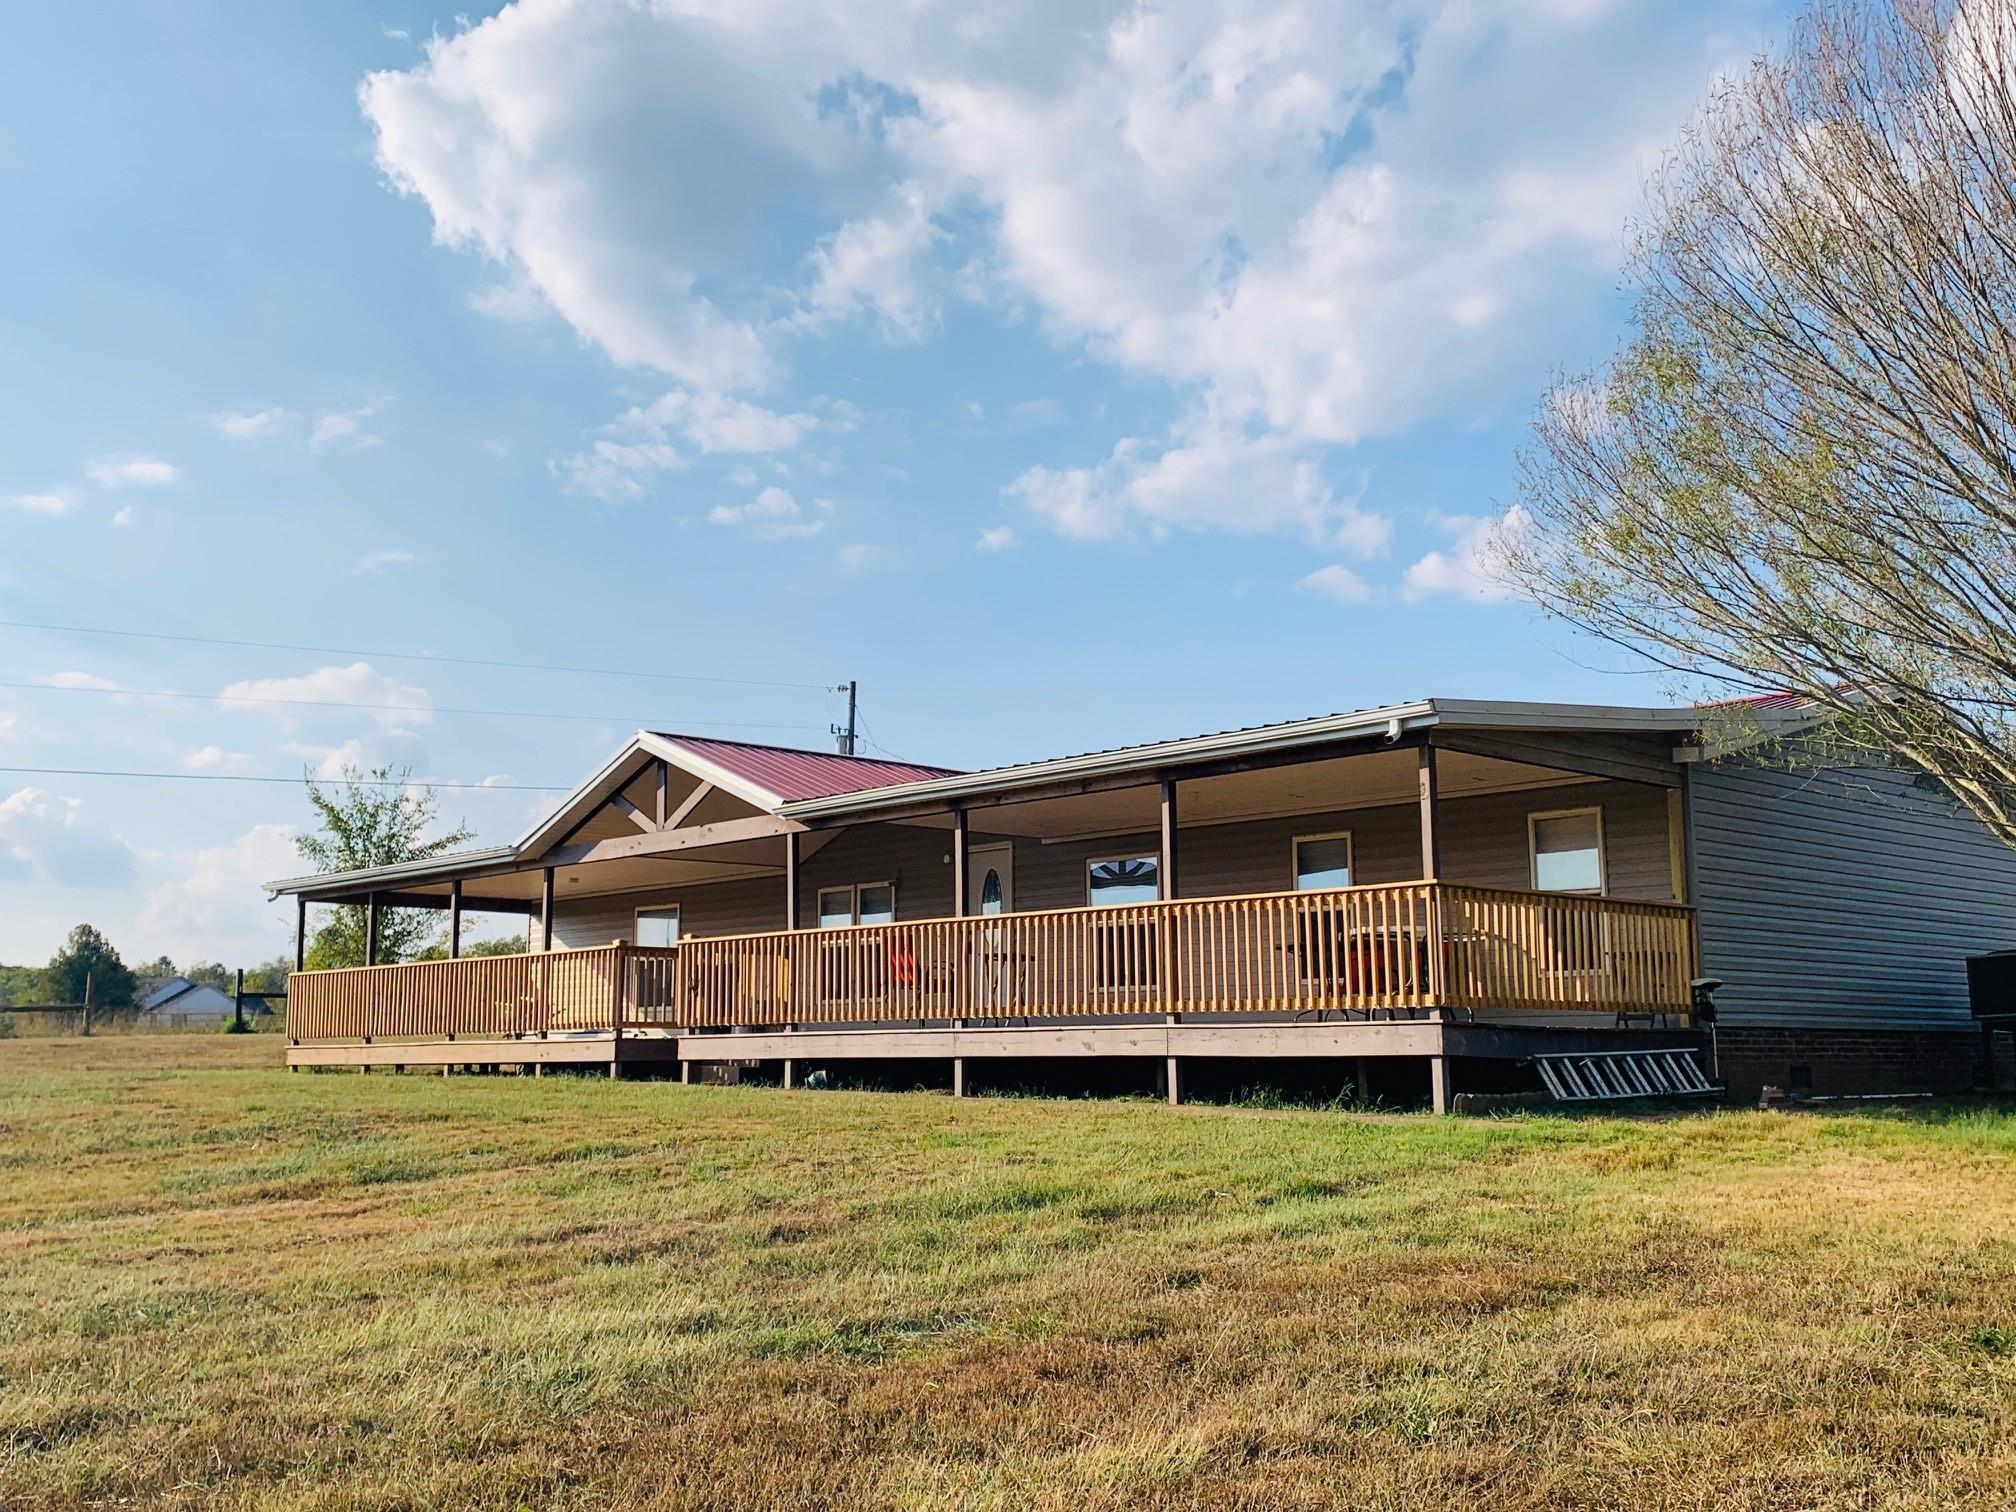 124 Virgil Crowell Rd, Unionville, TN 37180 - Unionville, TN real estate listing